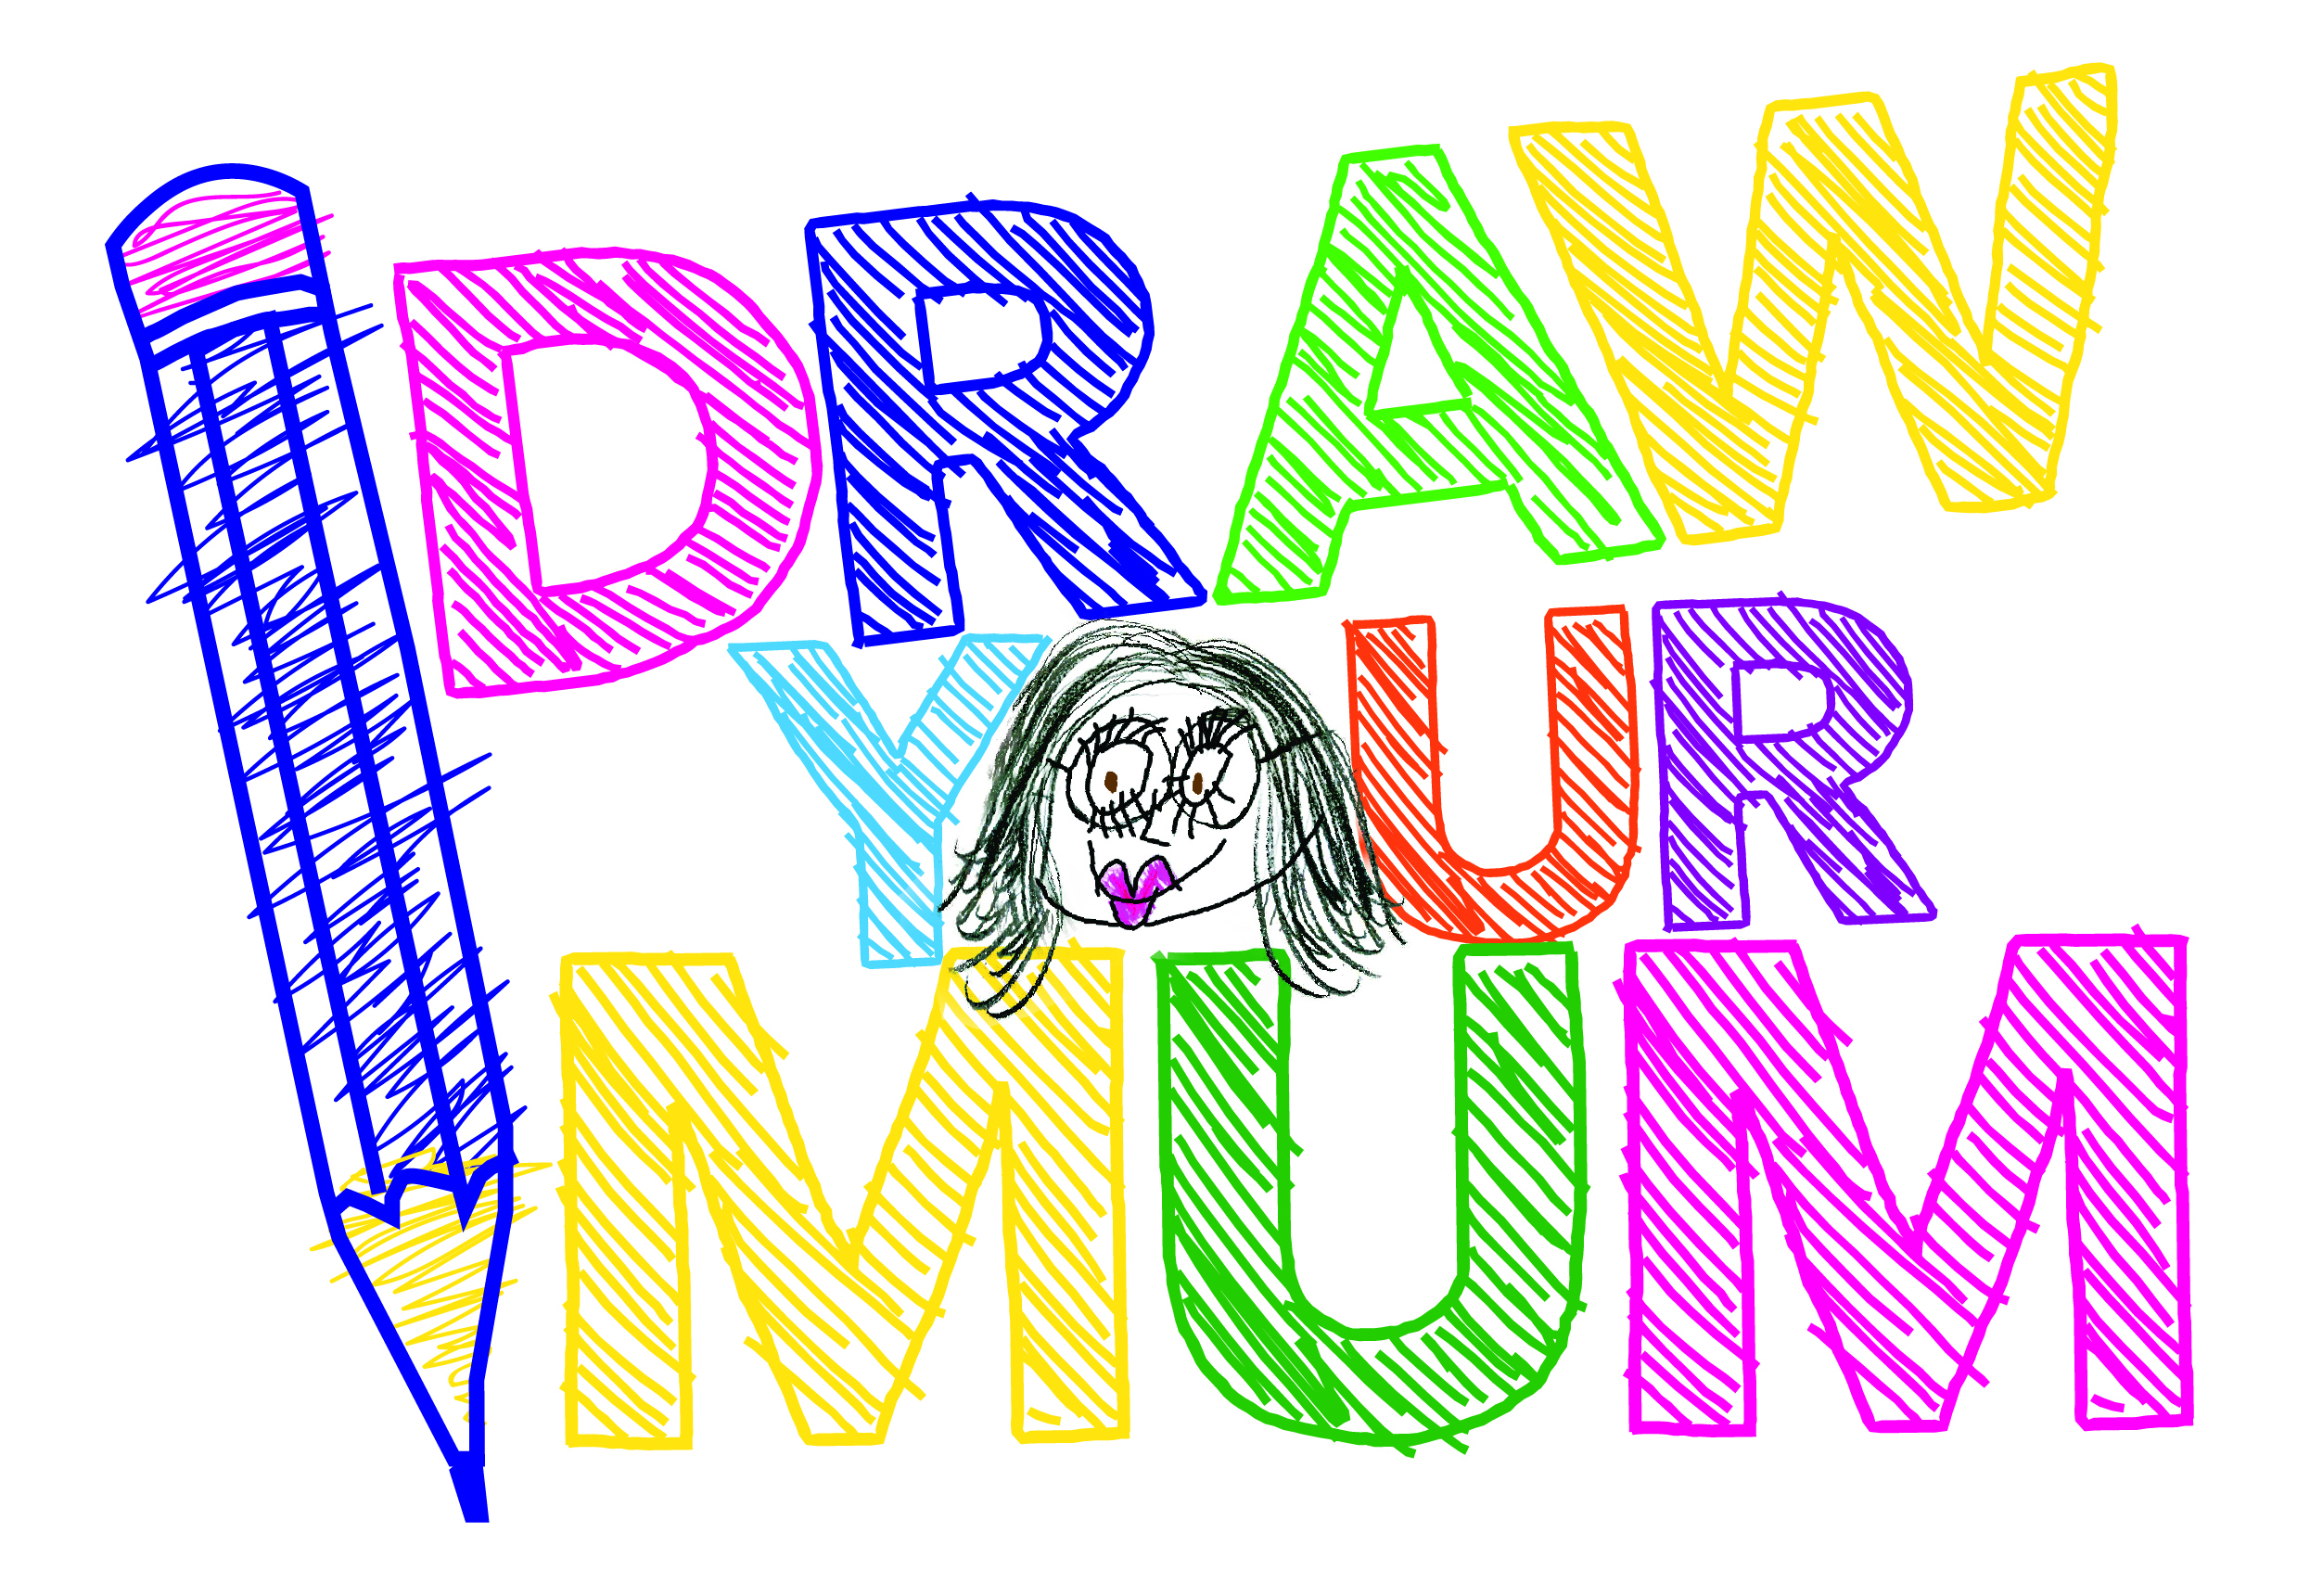 It's time to get creative with The Courier's Draw Your Mum project.